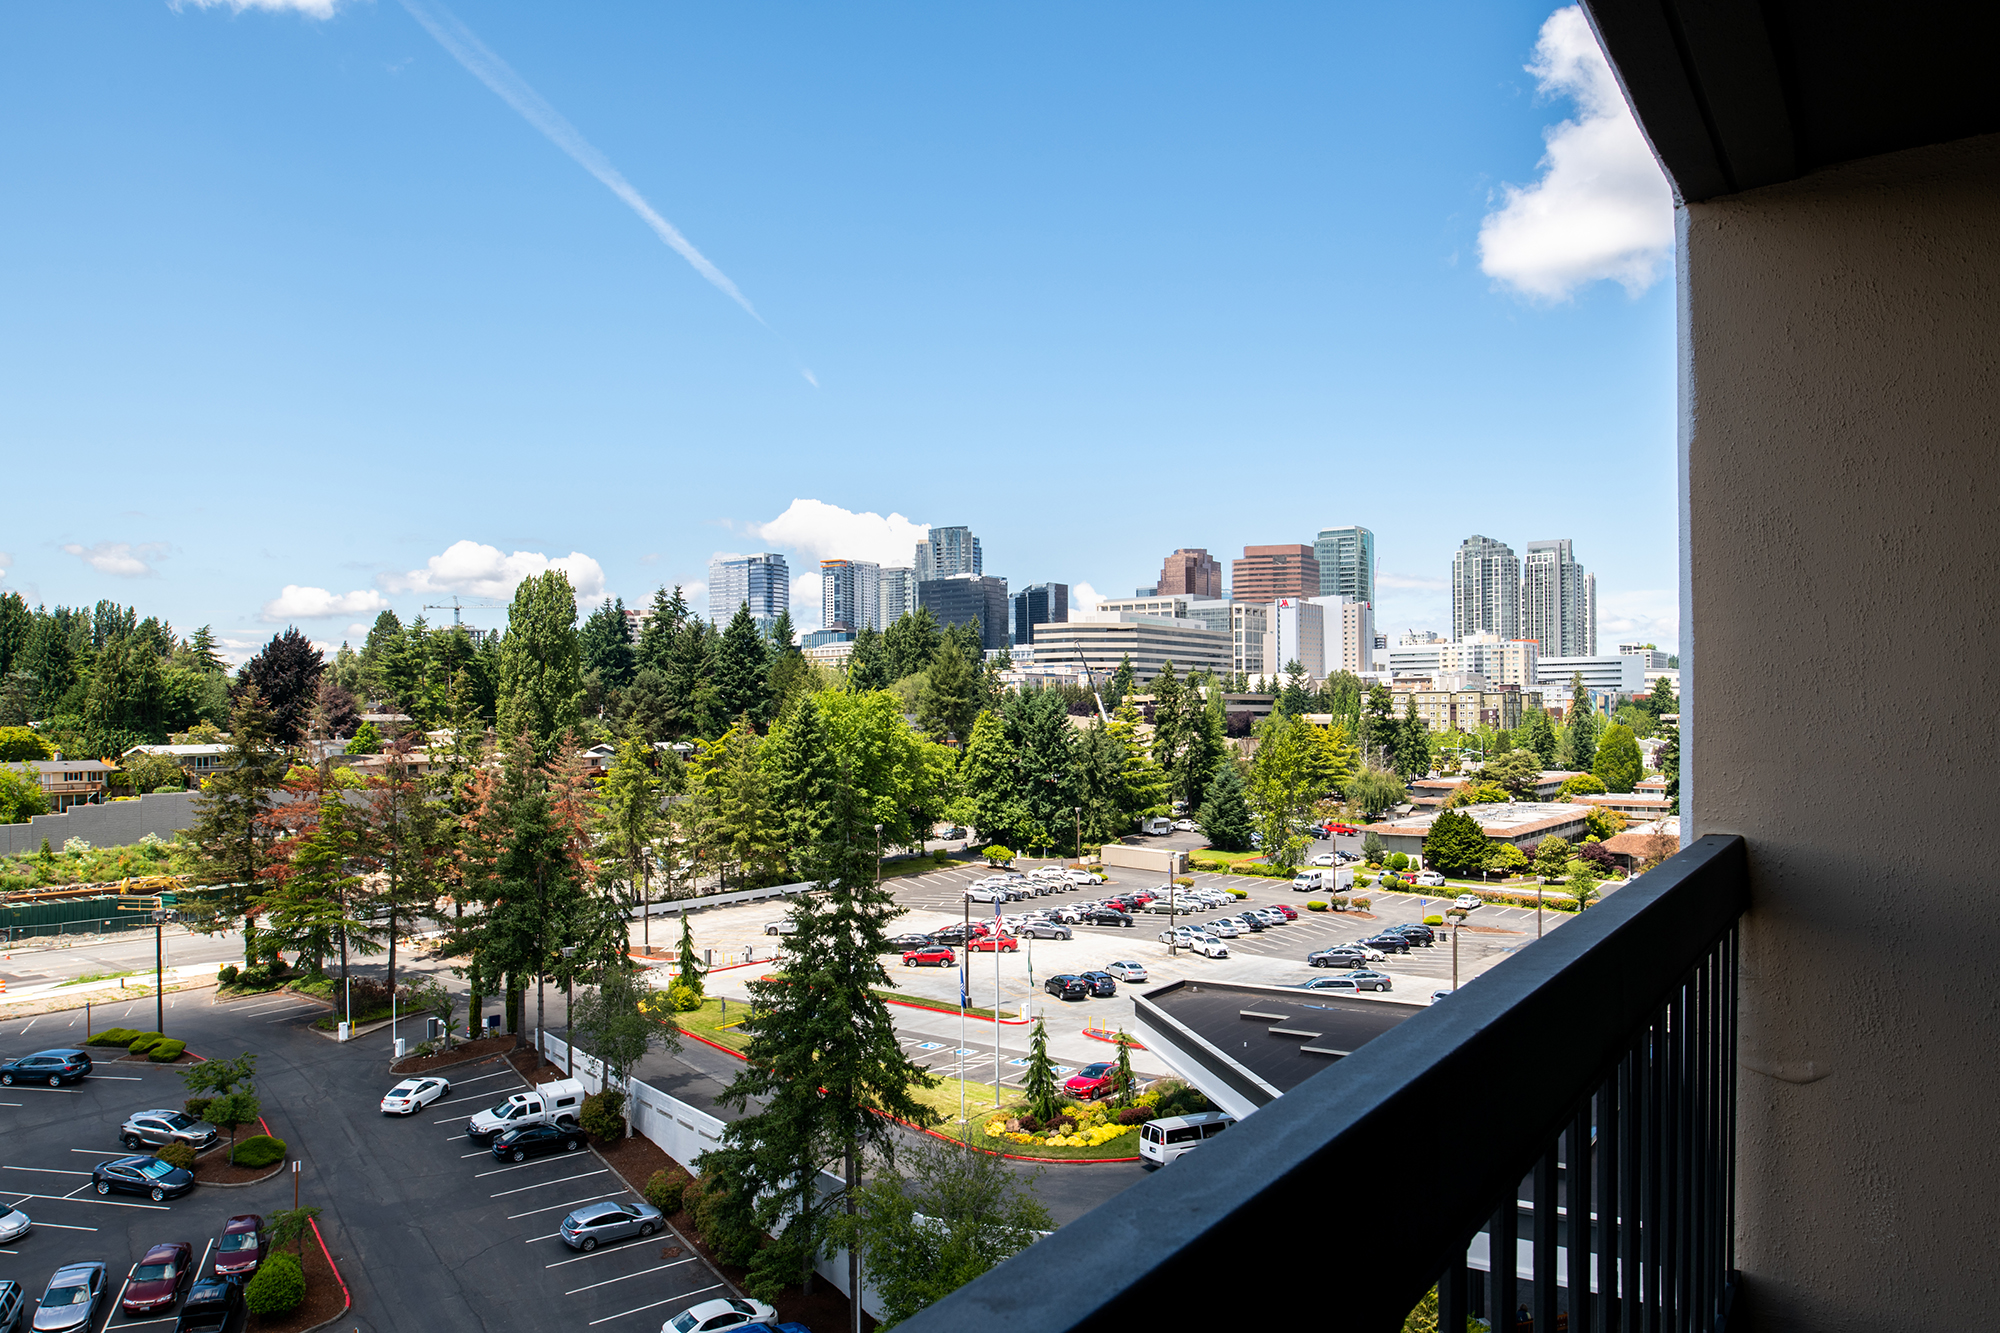 Hilton_Bellevue_LION_HF_Patio_View_1.jpg